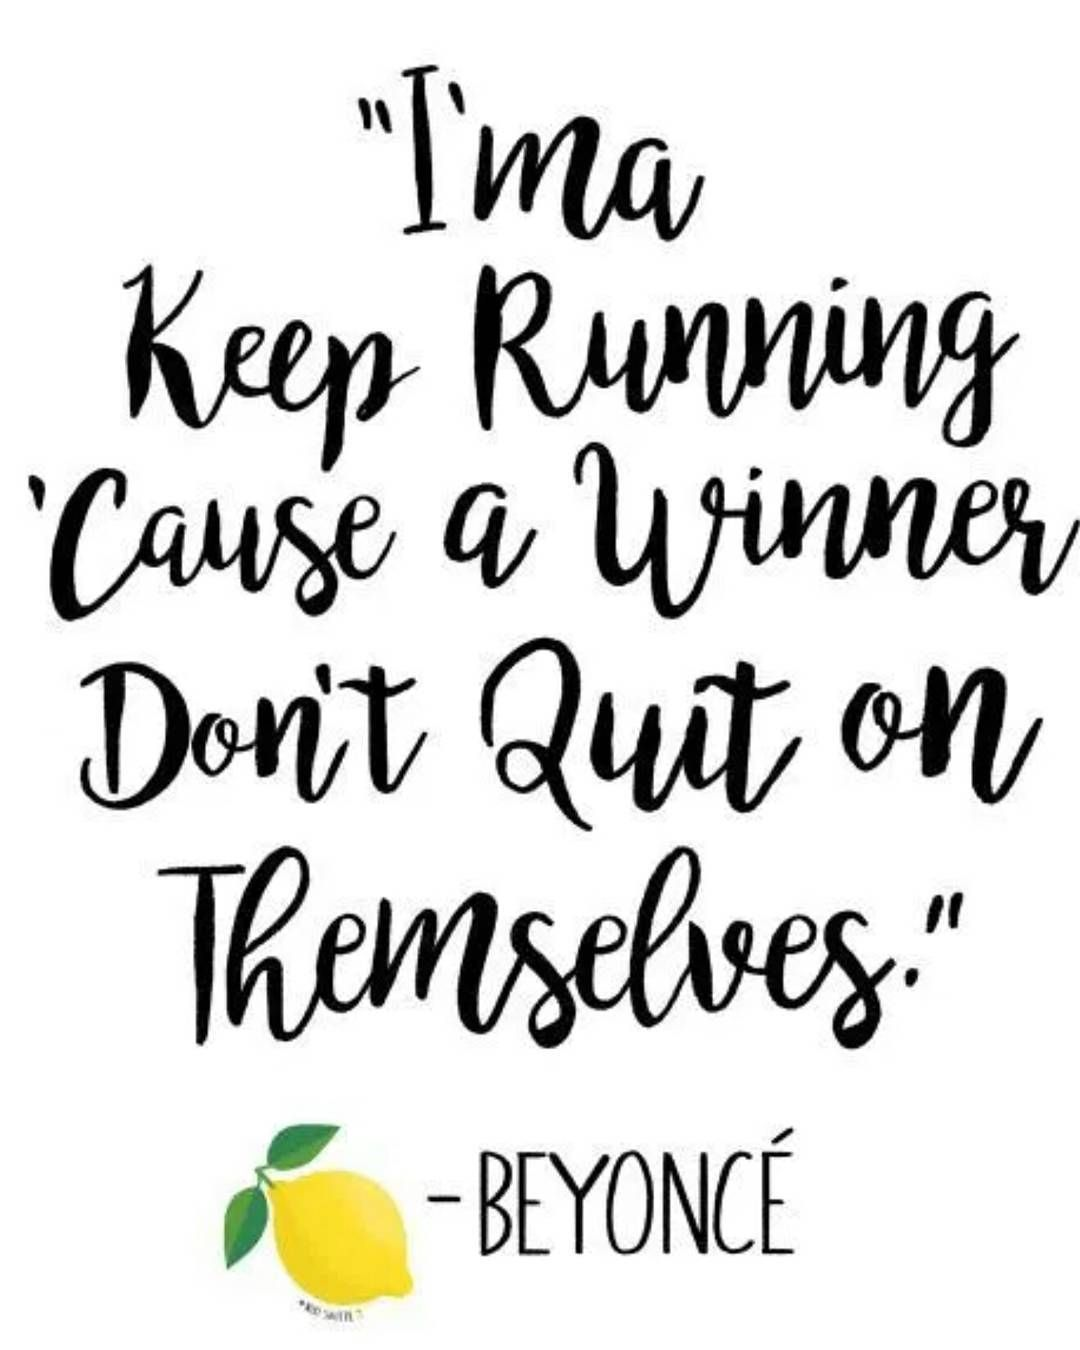 Beyonce Women Empowerment Quote - women empowerment songs - ima keep running cause a winner dont quit on themselves - women empowering women - empowering songs